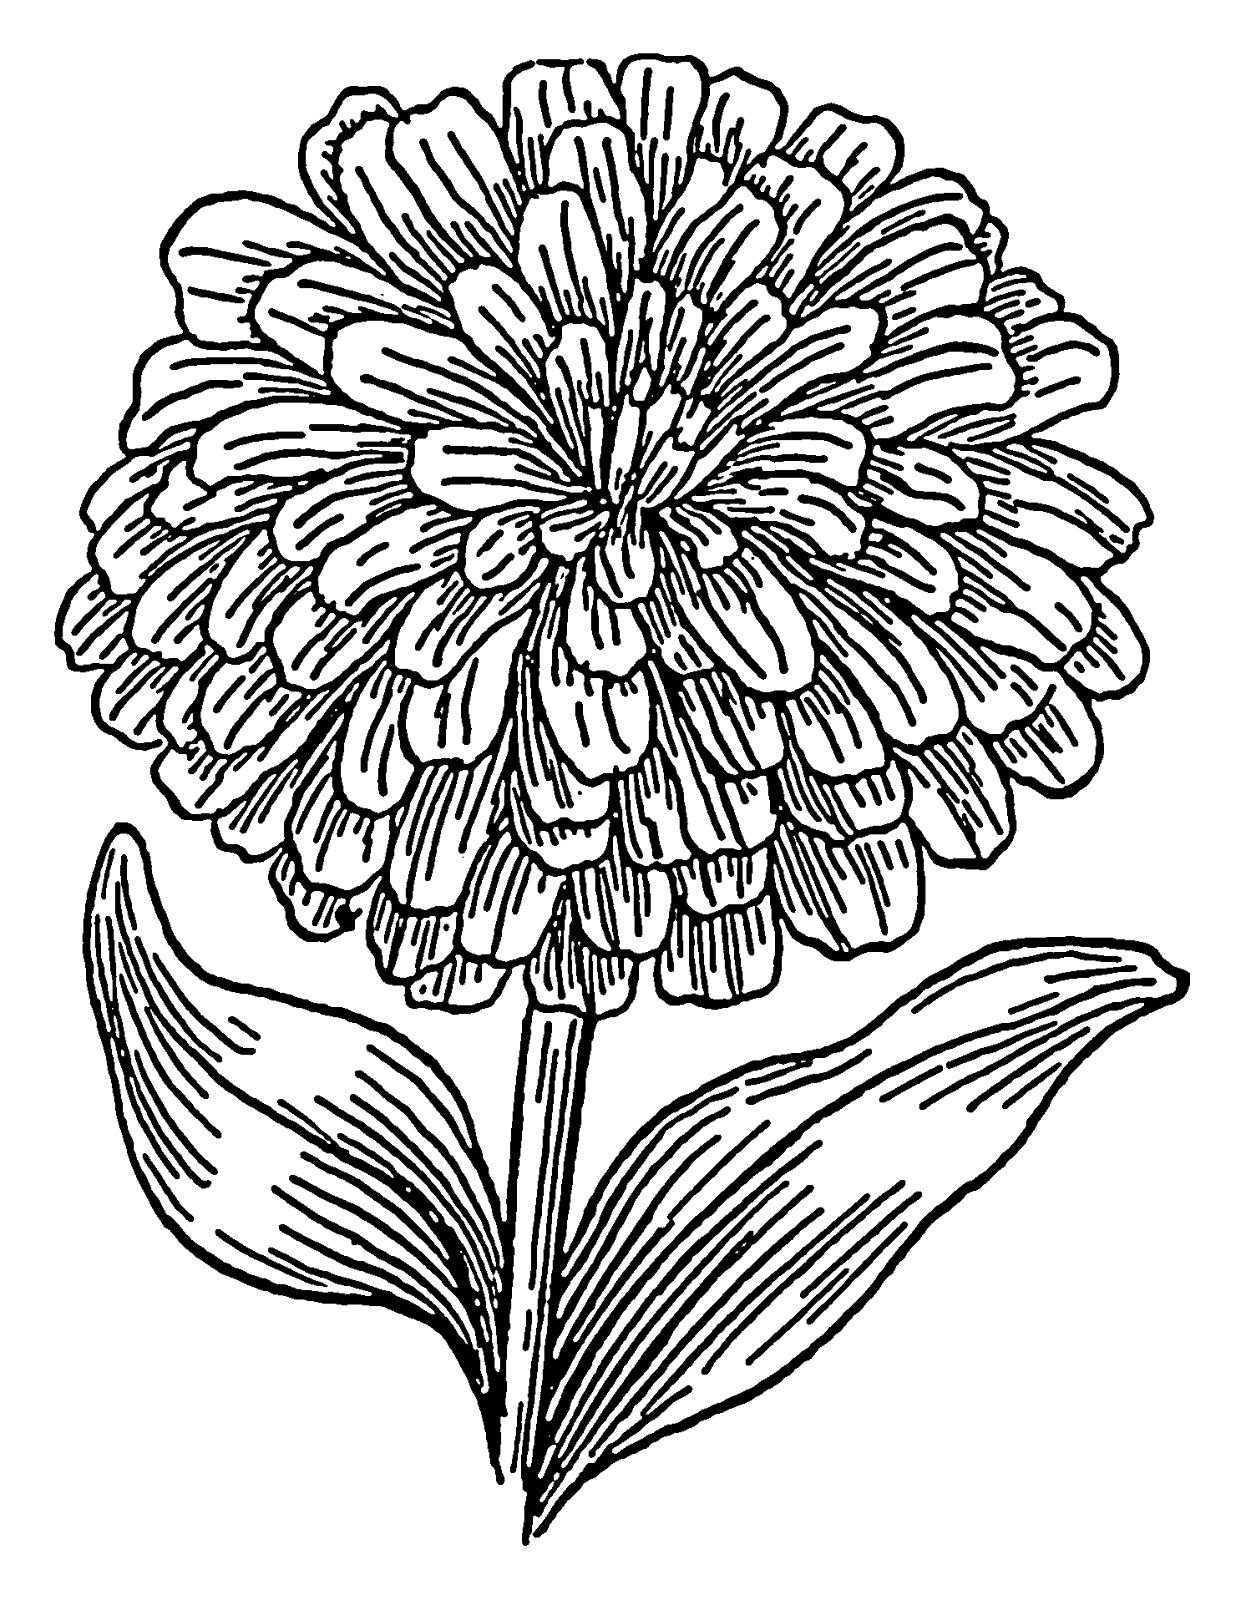 Marigolds outline | Tattoos | Pinterest | Birth flower ...